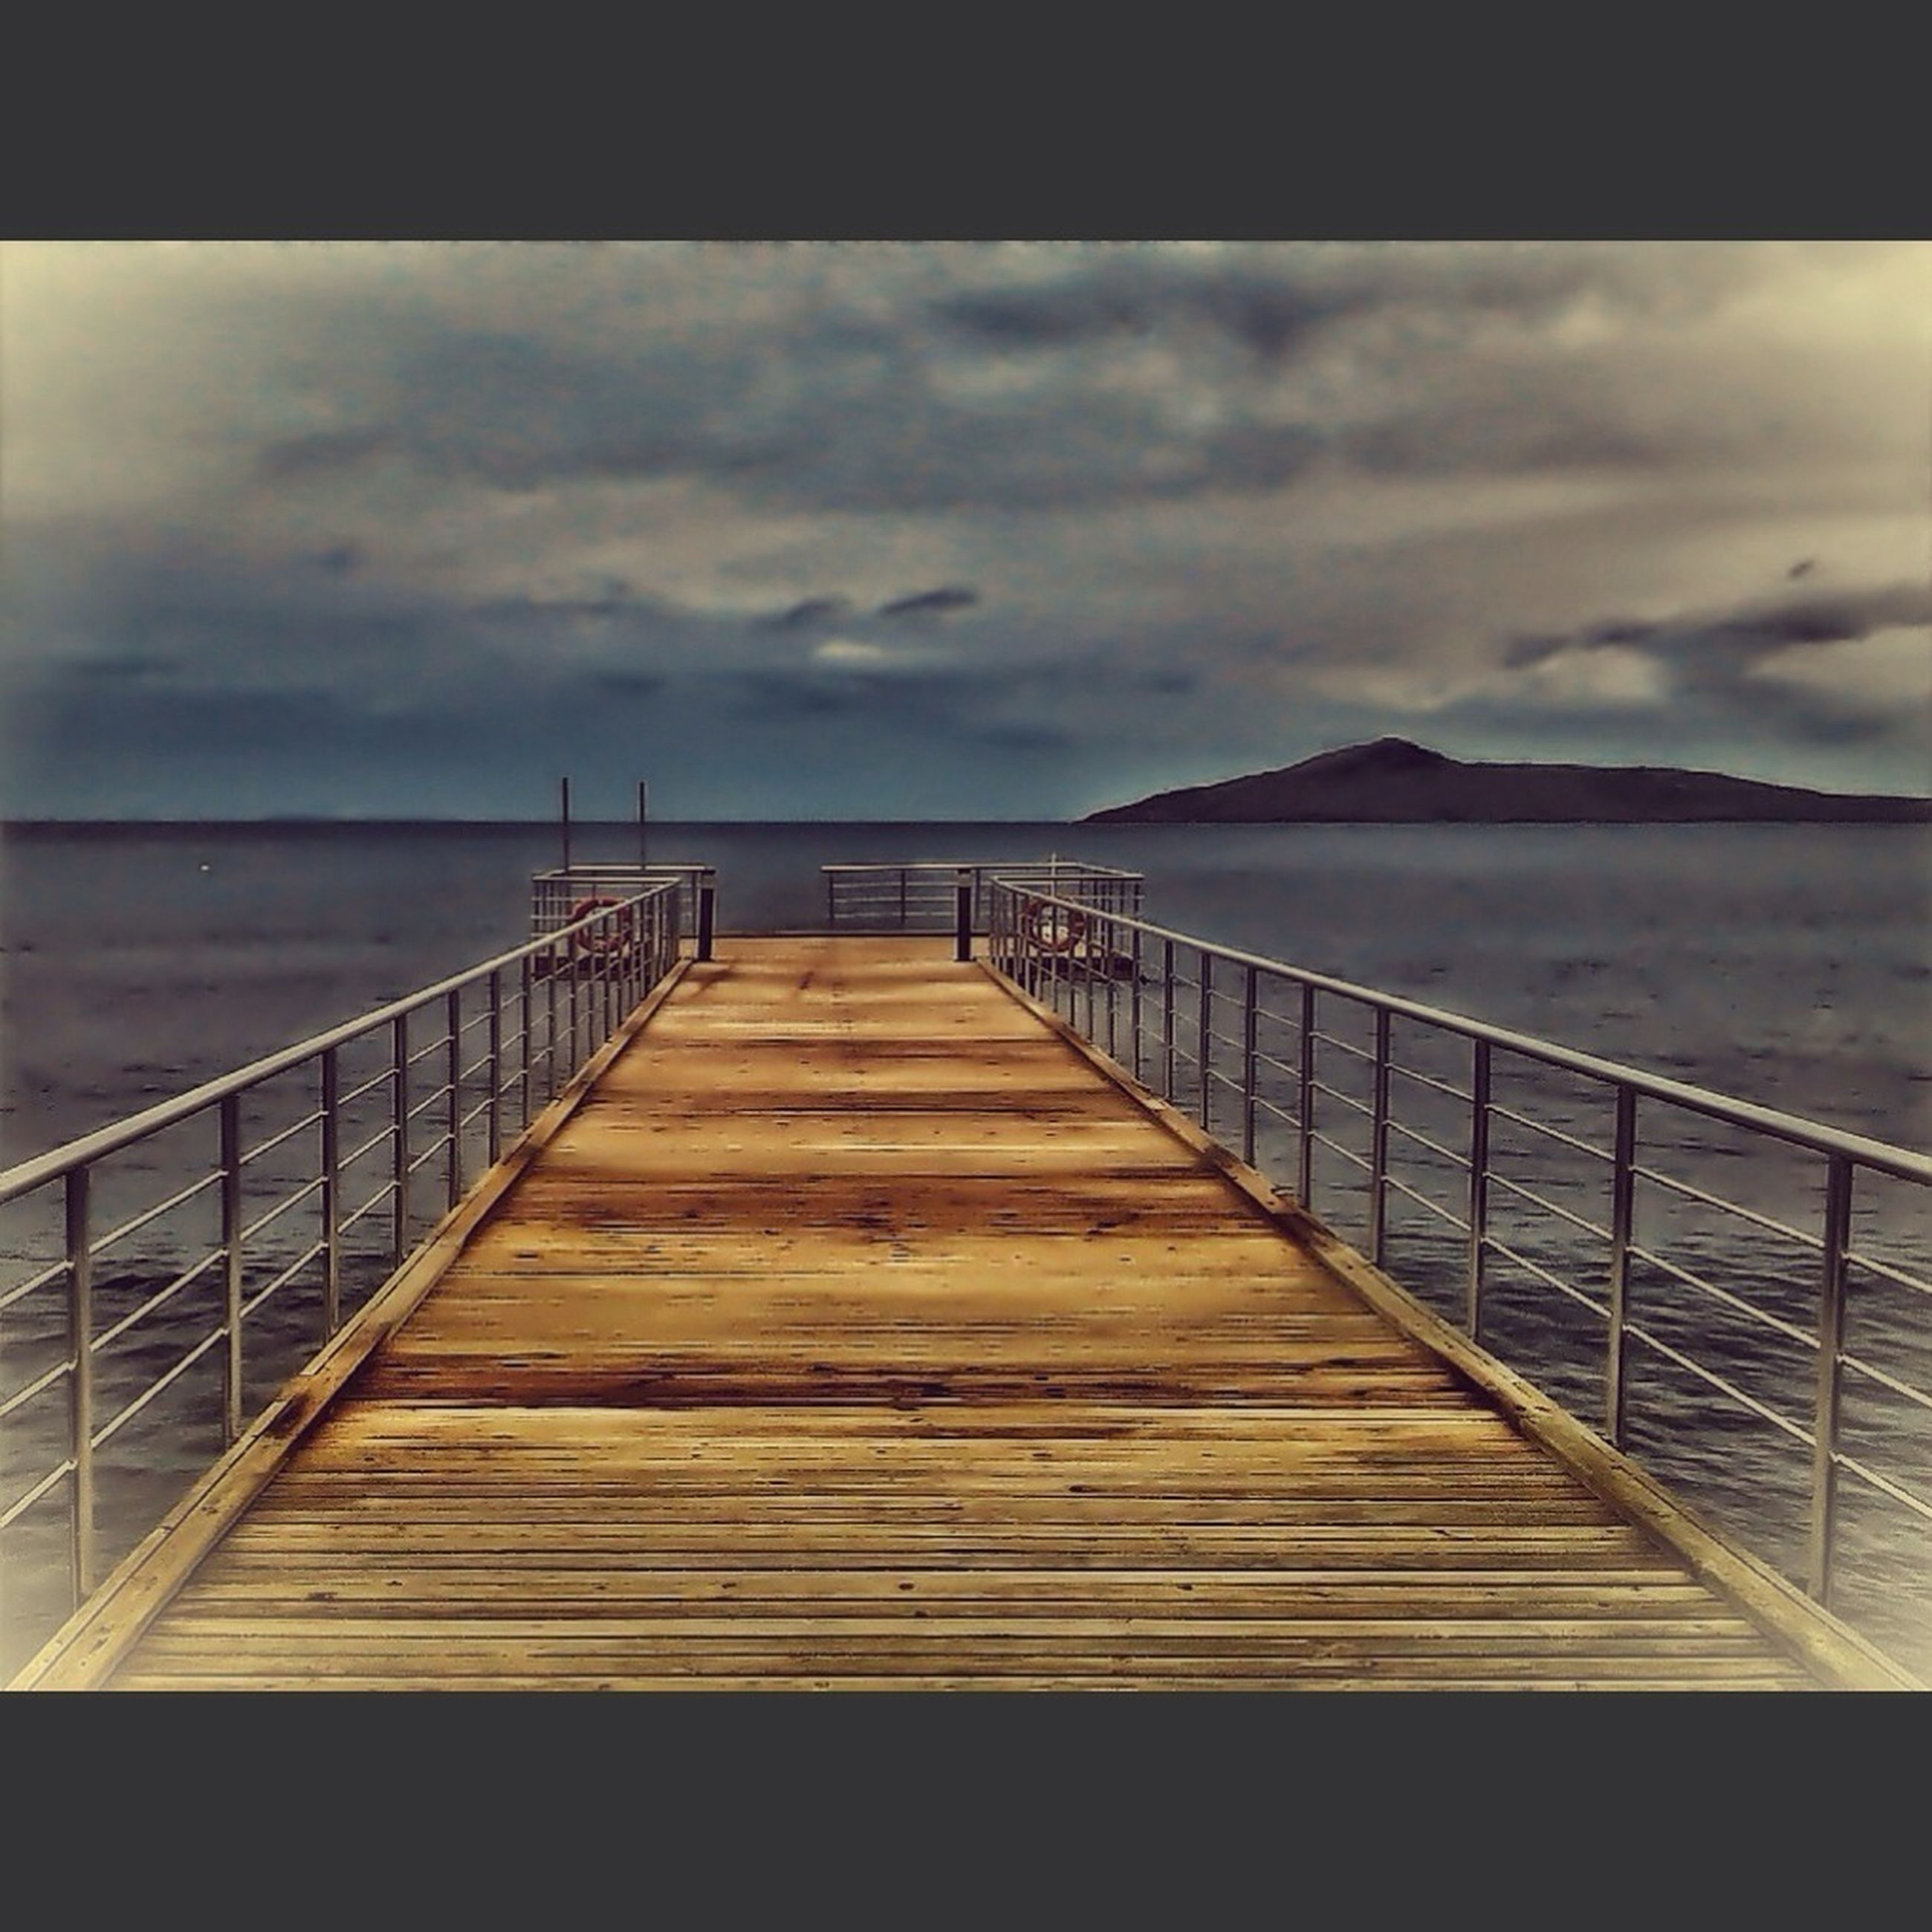 sea, water, sky, pier, railing, tranquil scene, wood - material, cloud - sky, tranquility, scenics, horizon over water, beauty in nature, nature, jetty, cloud, the way forward, cloudy, boardwalk, wood, idyllic